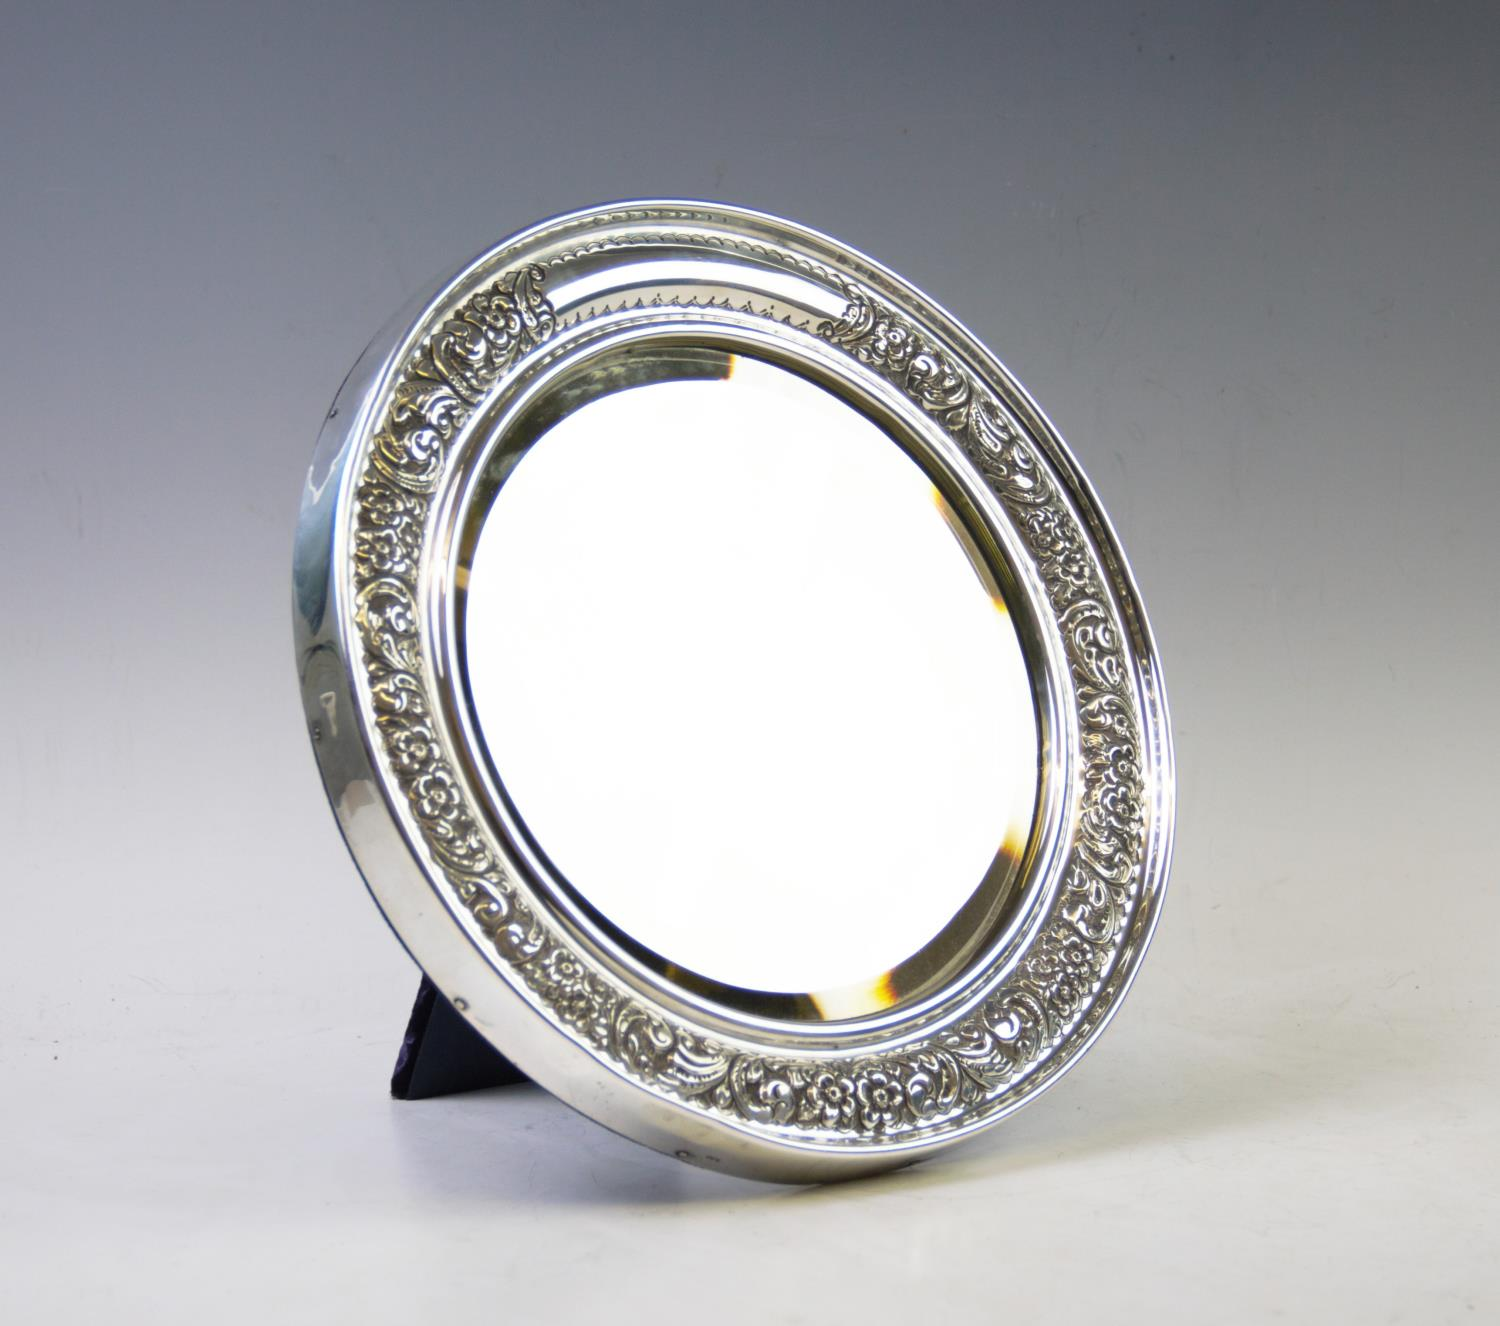 Lot 8 - A Victorian silver mirror, probably William Davenport, Birmingham 1900, of circular form, with